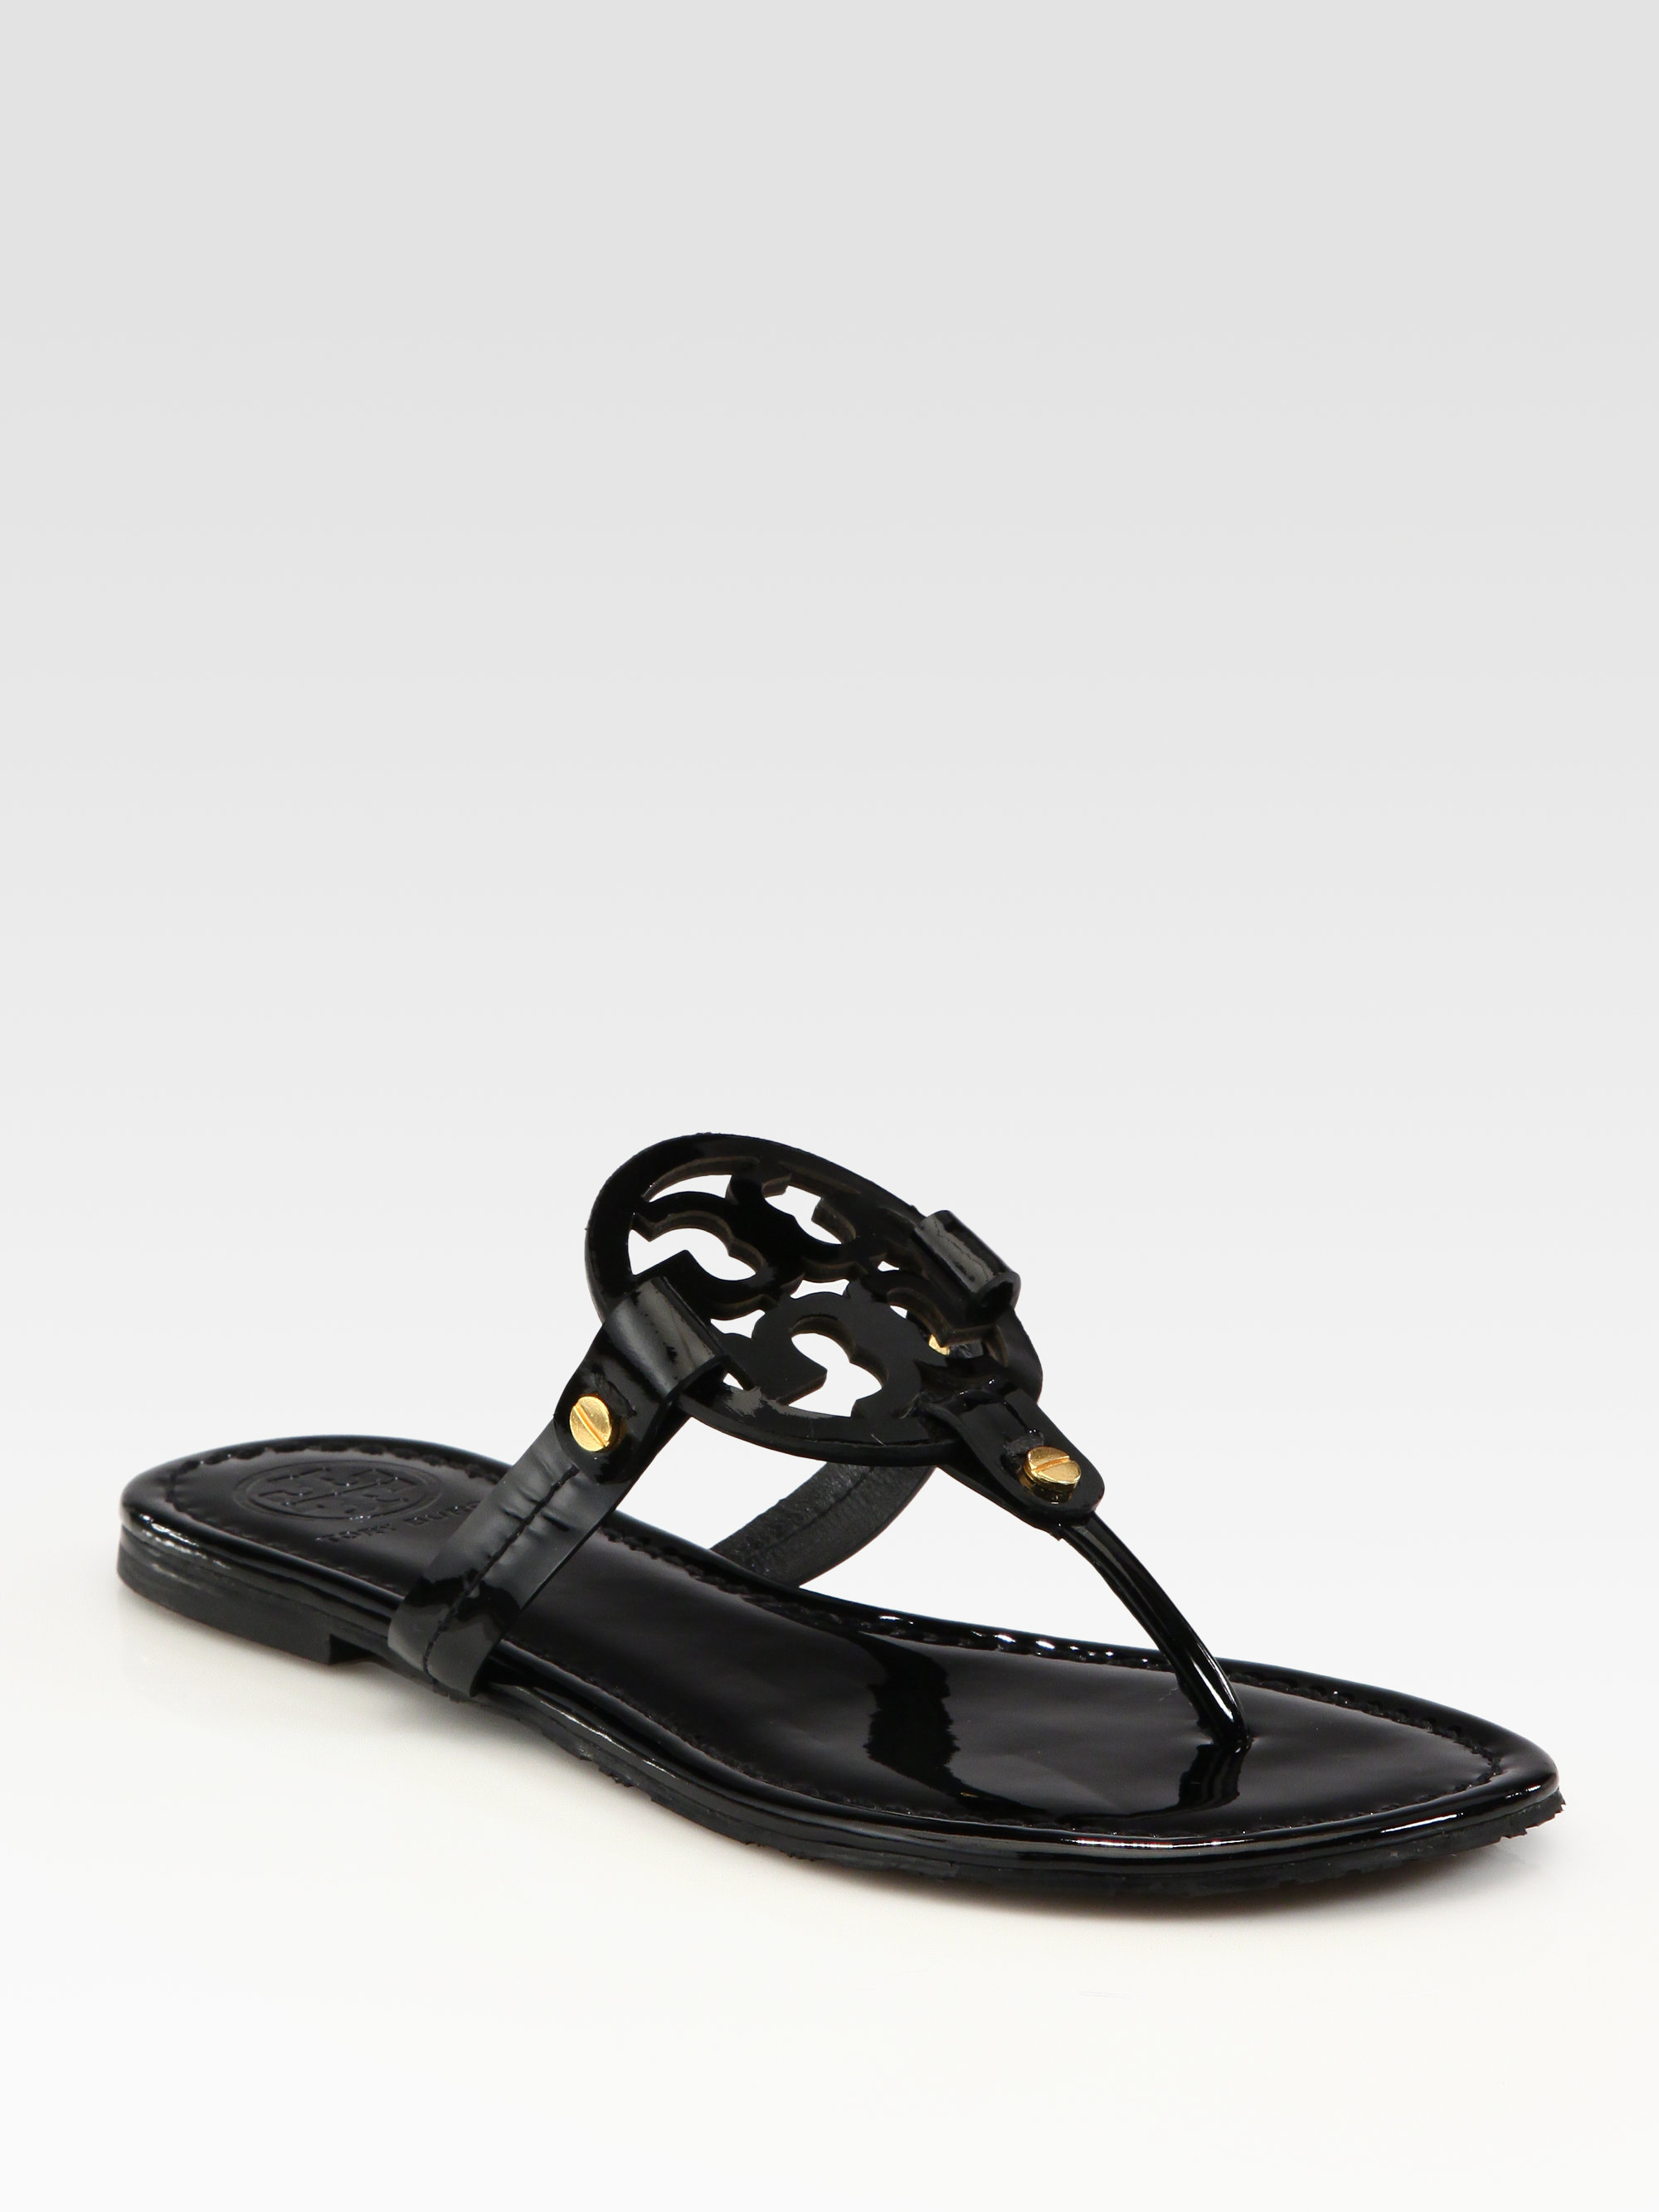 3b0d9aefdbfe Authentic TORY BURCH Miller Thong Sandal Black Patent Size 10 M 195